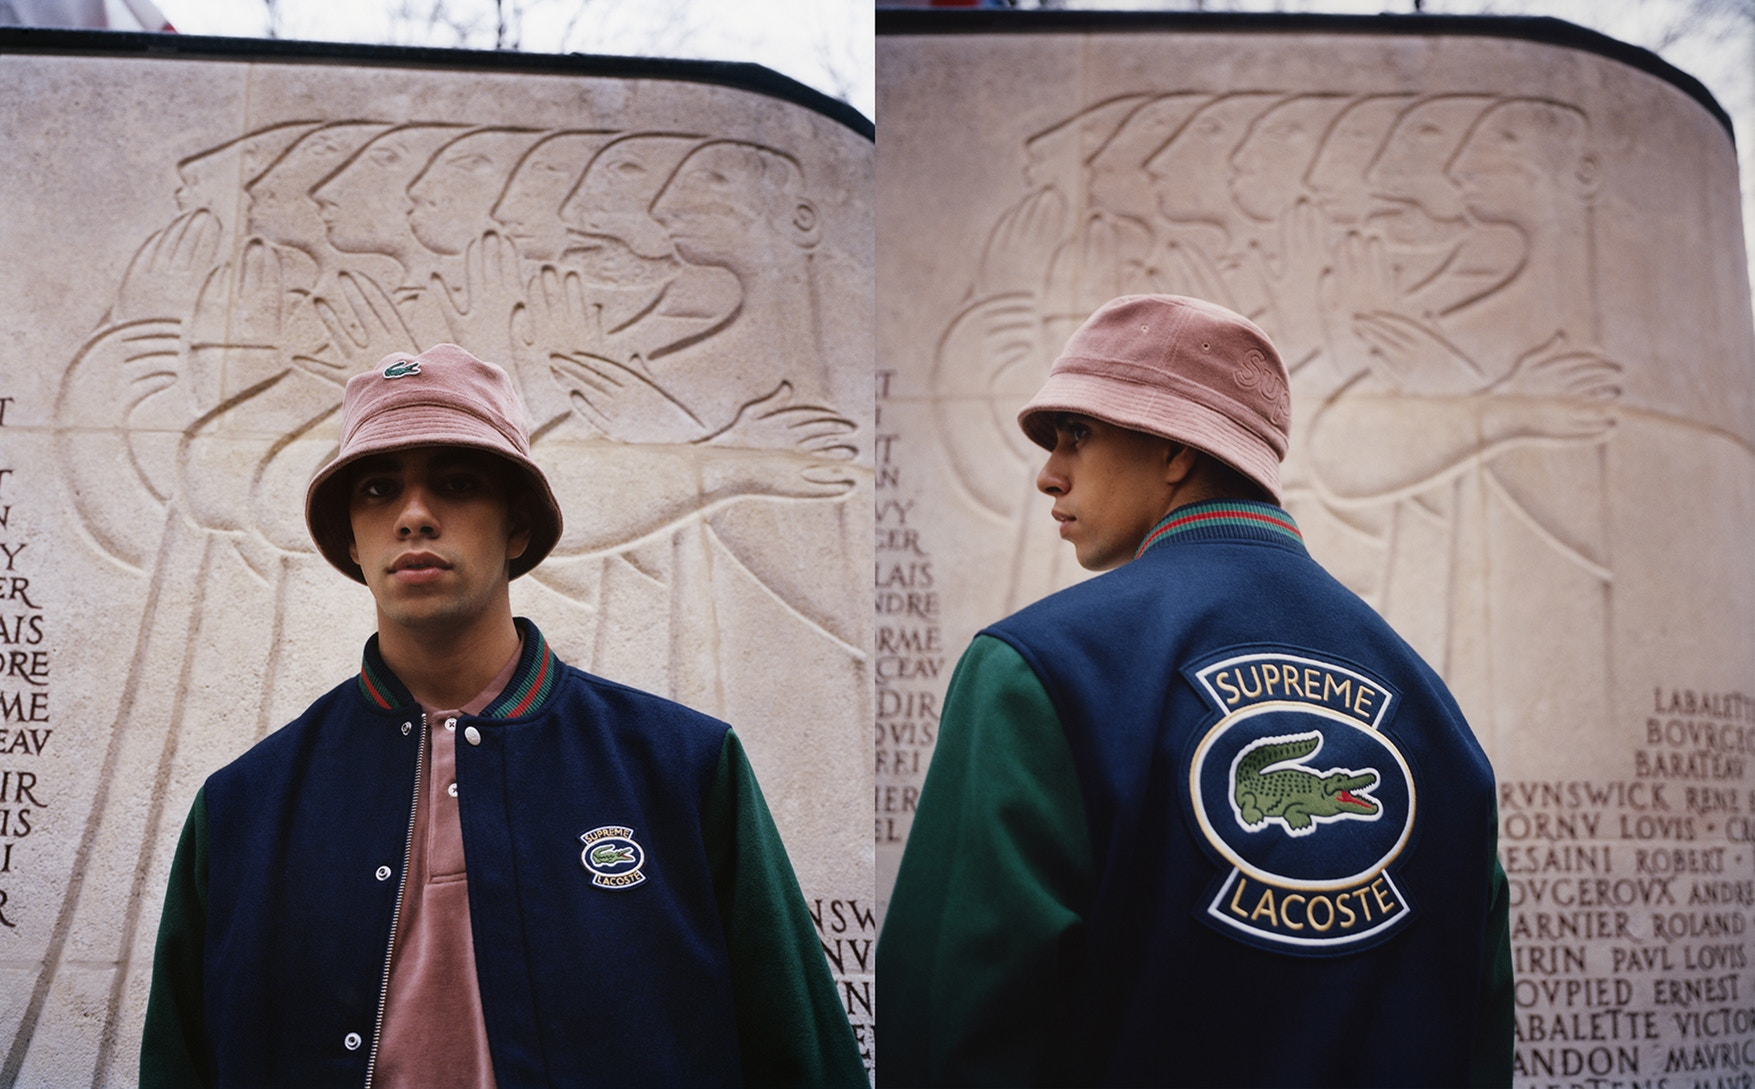 info for 5fef8 6437e Supreme x Lacoste Spring/Summer 2018 Collection | Dead Stock